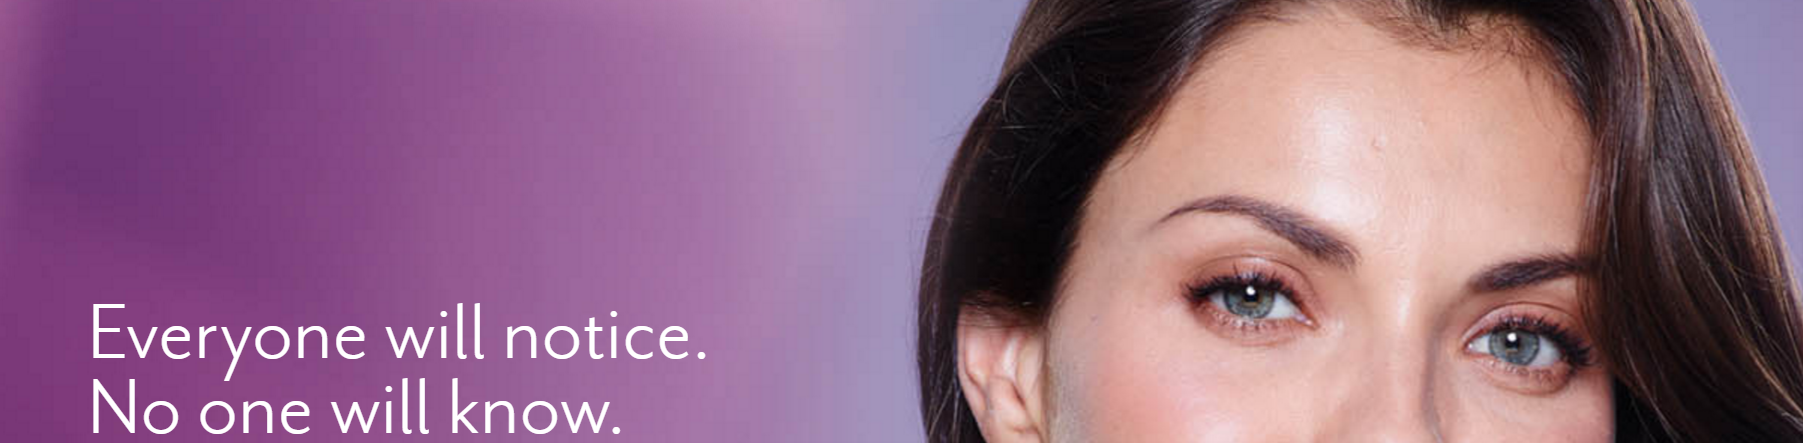 Juvederm dermal fillers at Azura Skin Care Center - Cary, NC